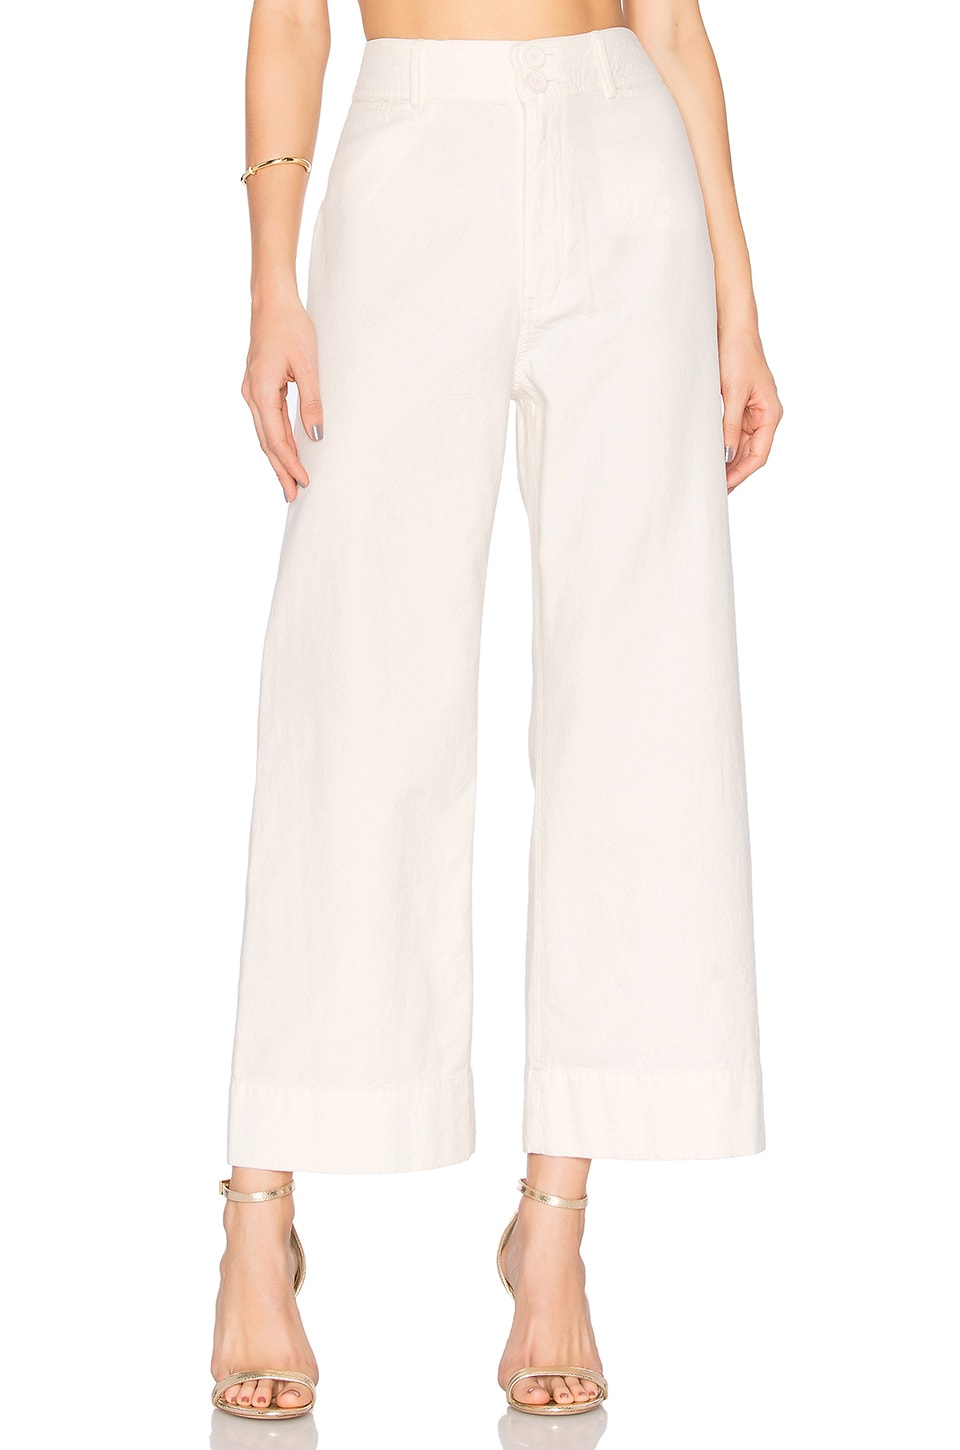 APIECE APART Merida Pants in Cream